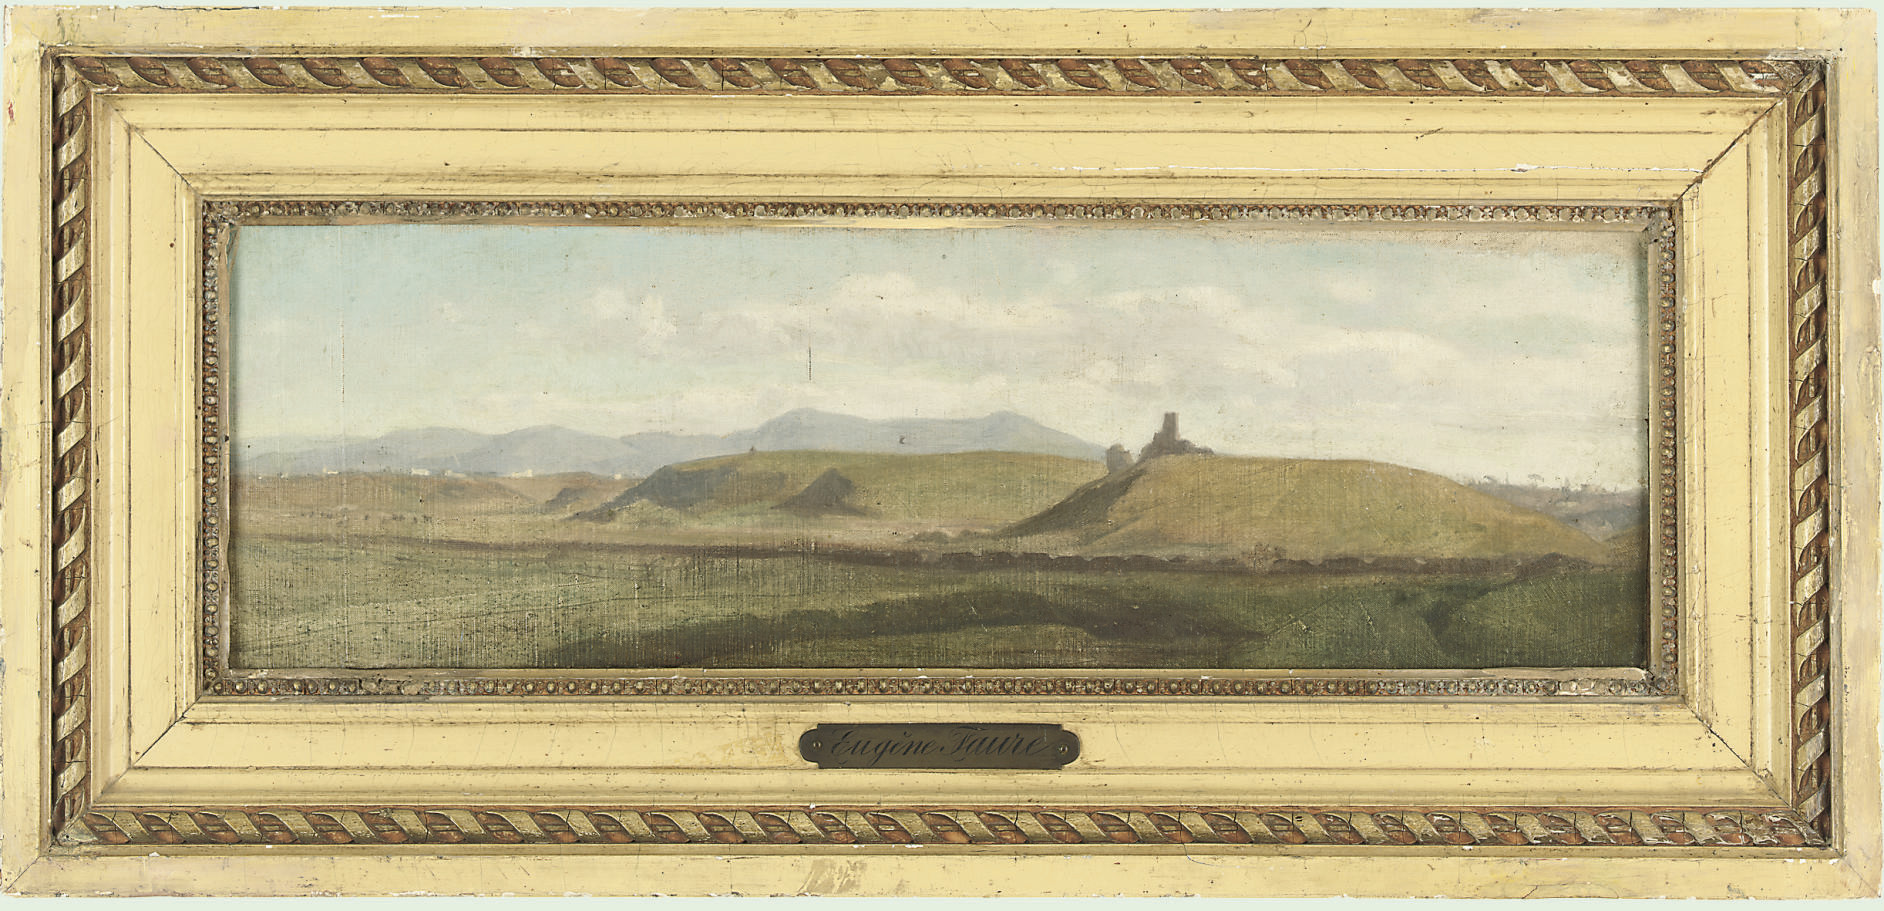 View across the hills, possibly of La Tour Sans Venin in the region of Seyssinet-Pariset, Grenoble